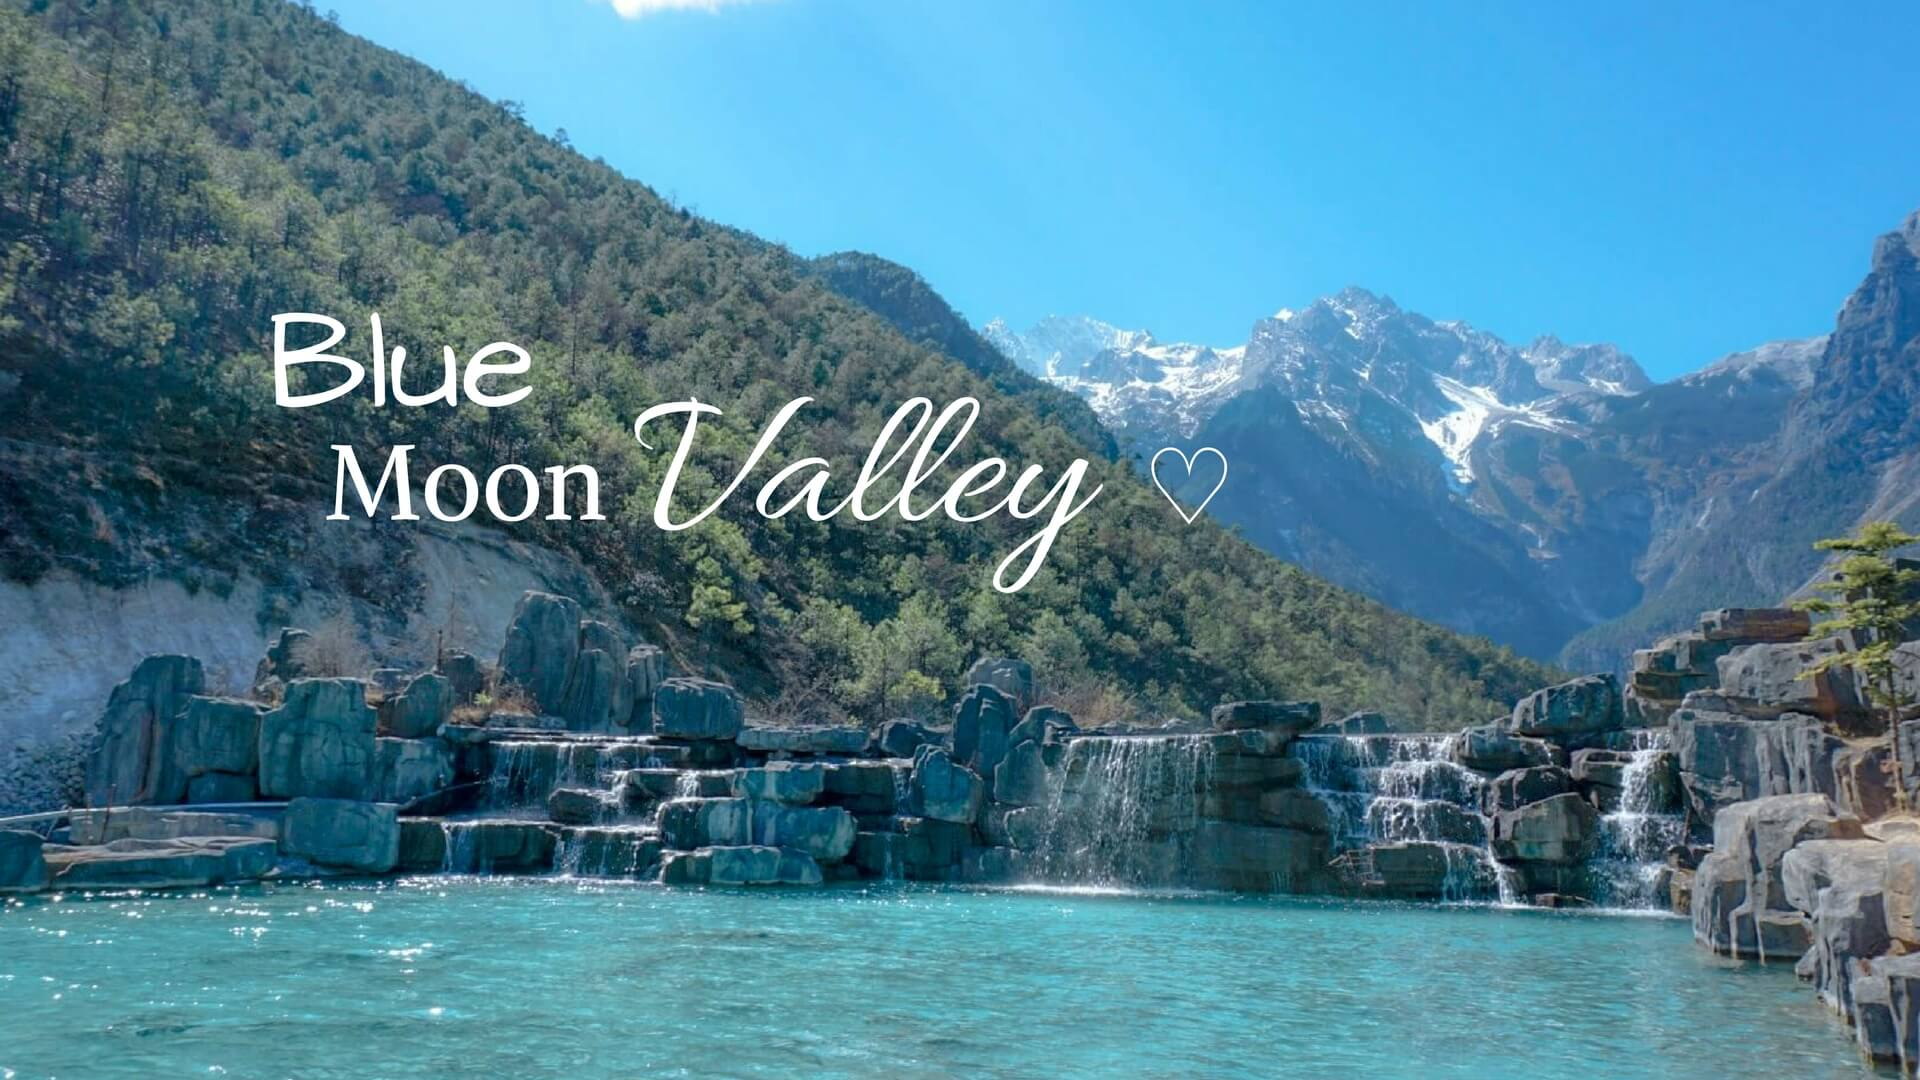 Comment aller visiter parc blue moon valley chine Yunnan